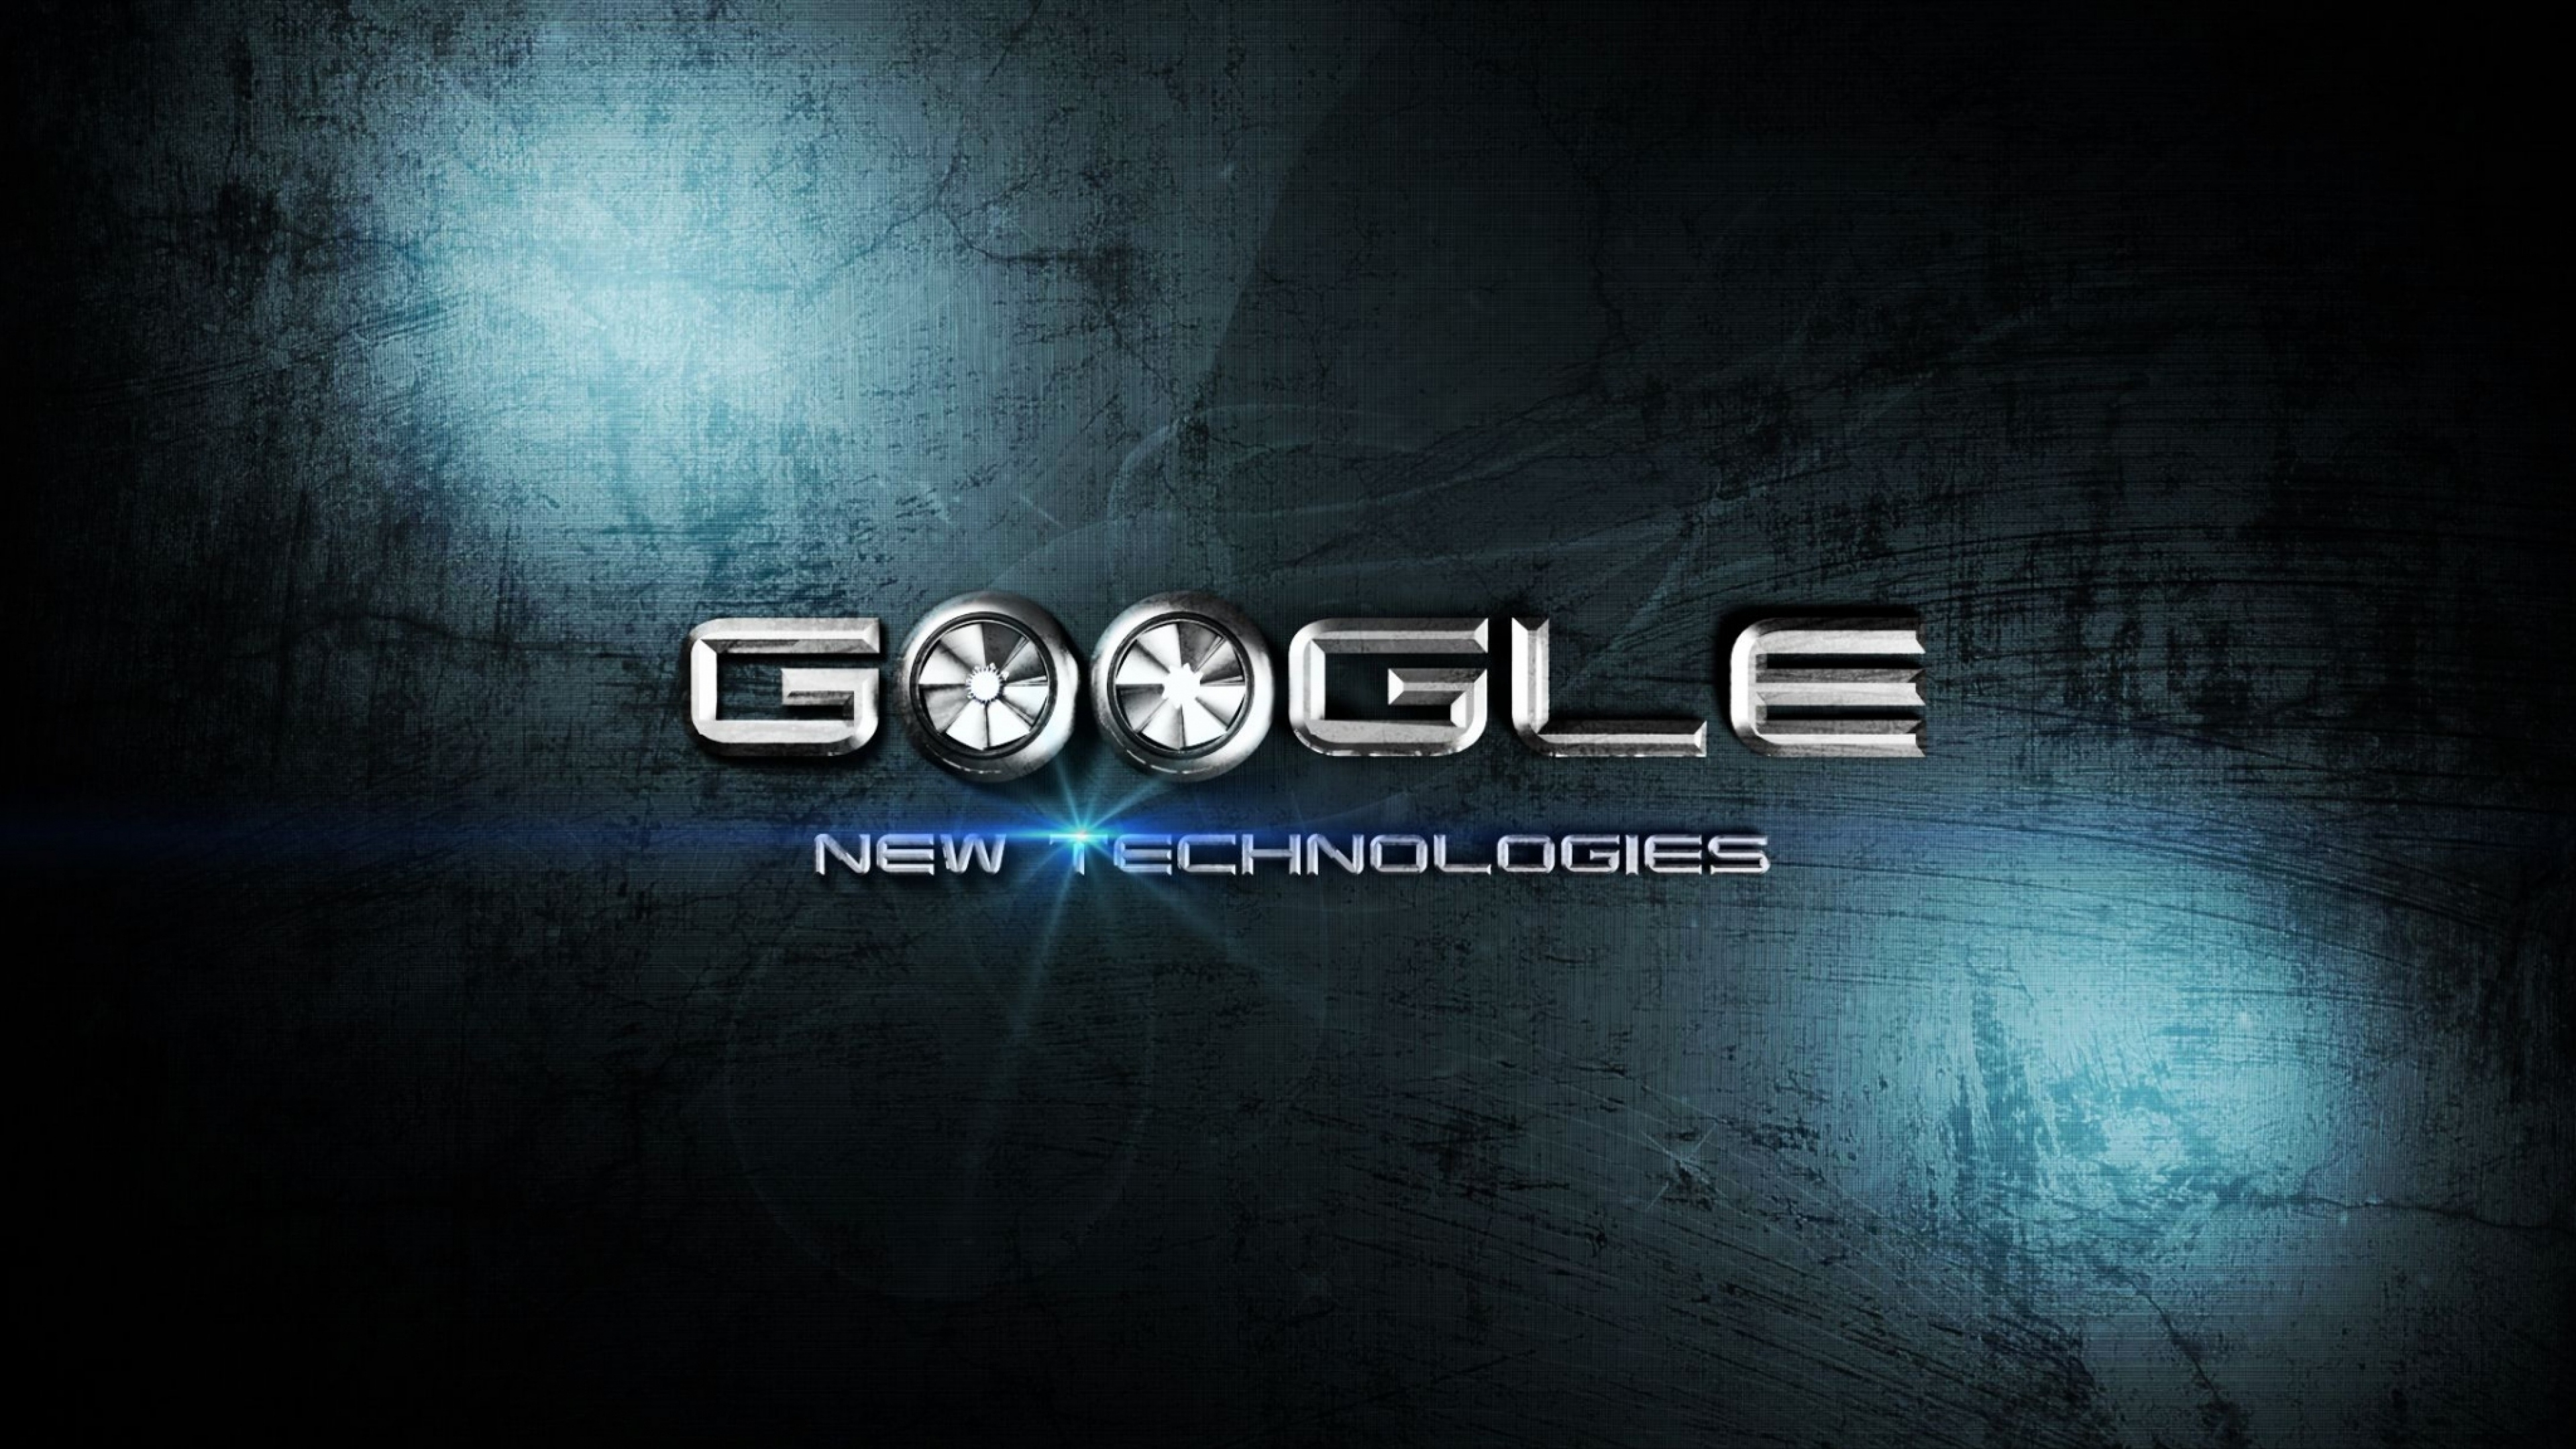 hi tech google new technologies wallpaper background 4k